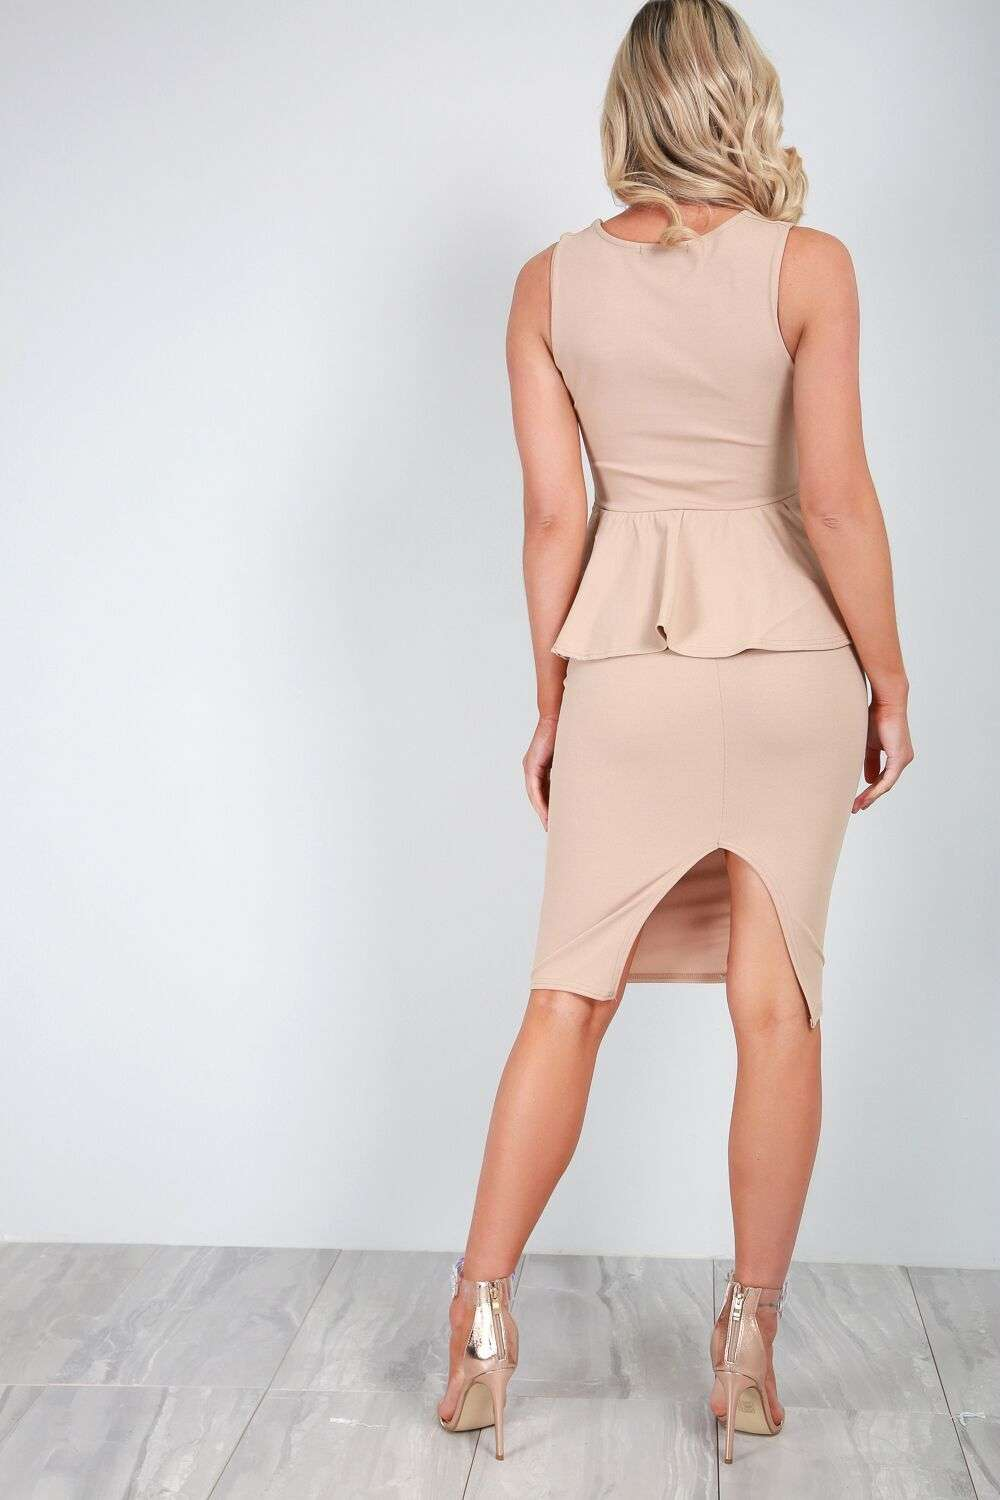 Dusty Pink Square Neck Peplum Frill Bodycon Dress - bejealous-com